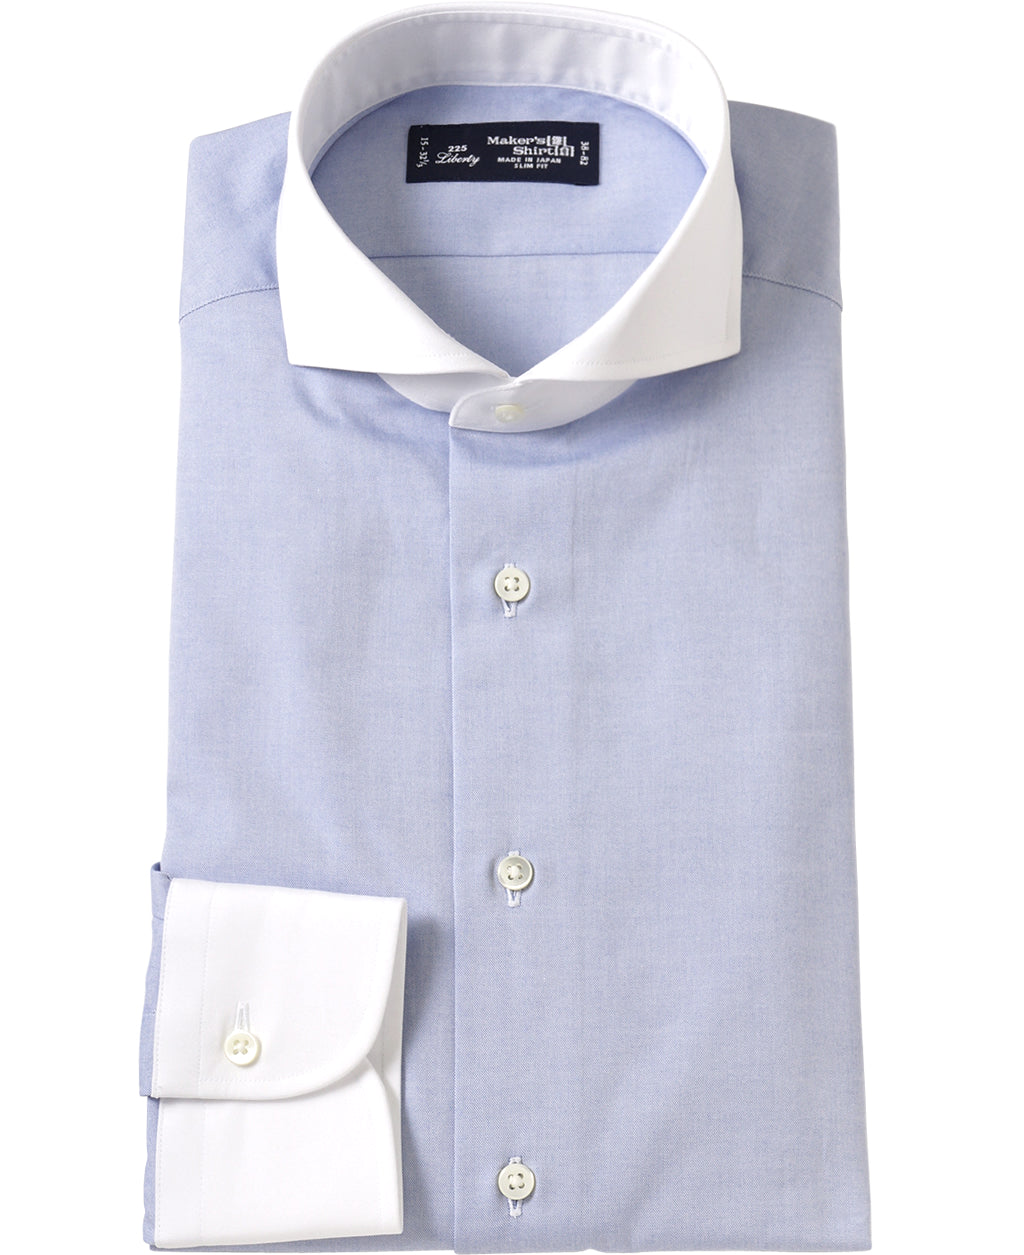 White contrast collar blue shirt